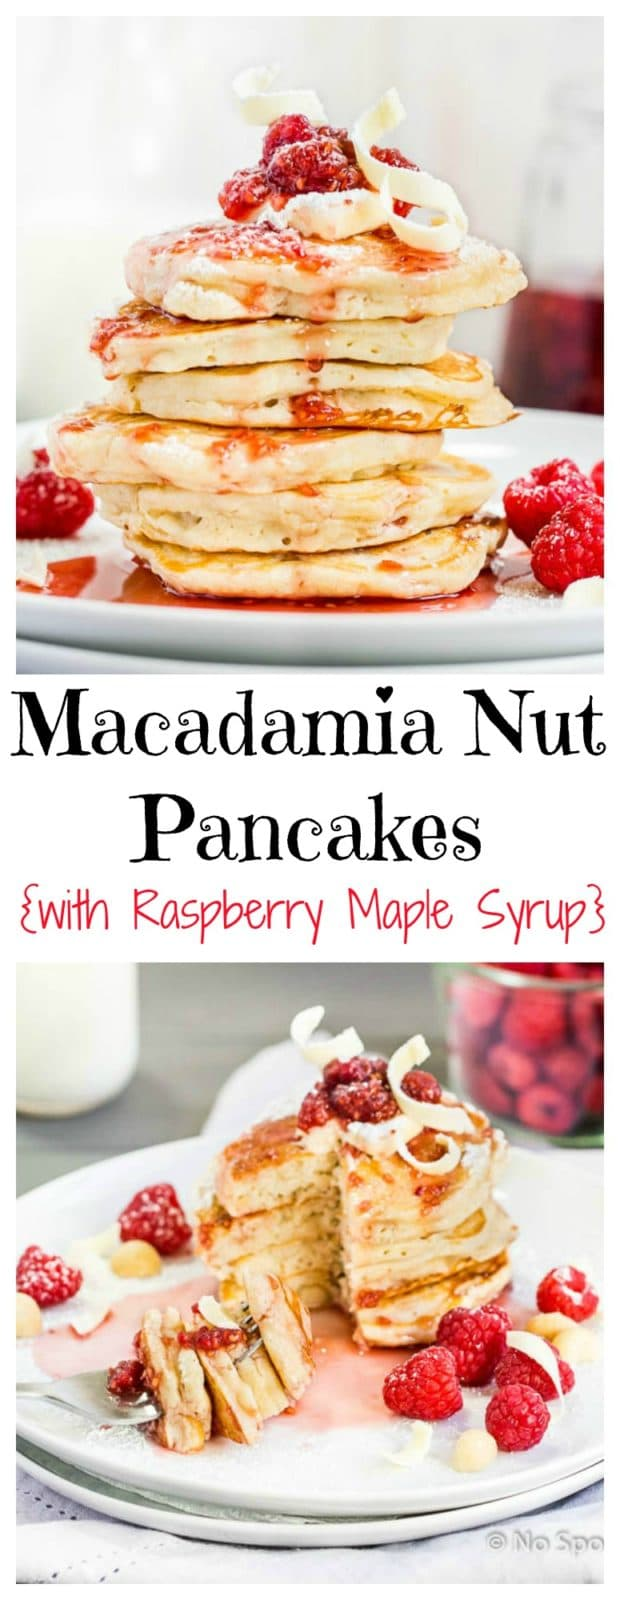 Macadamia Nut Pancakes with Raspberry Maple Syrup